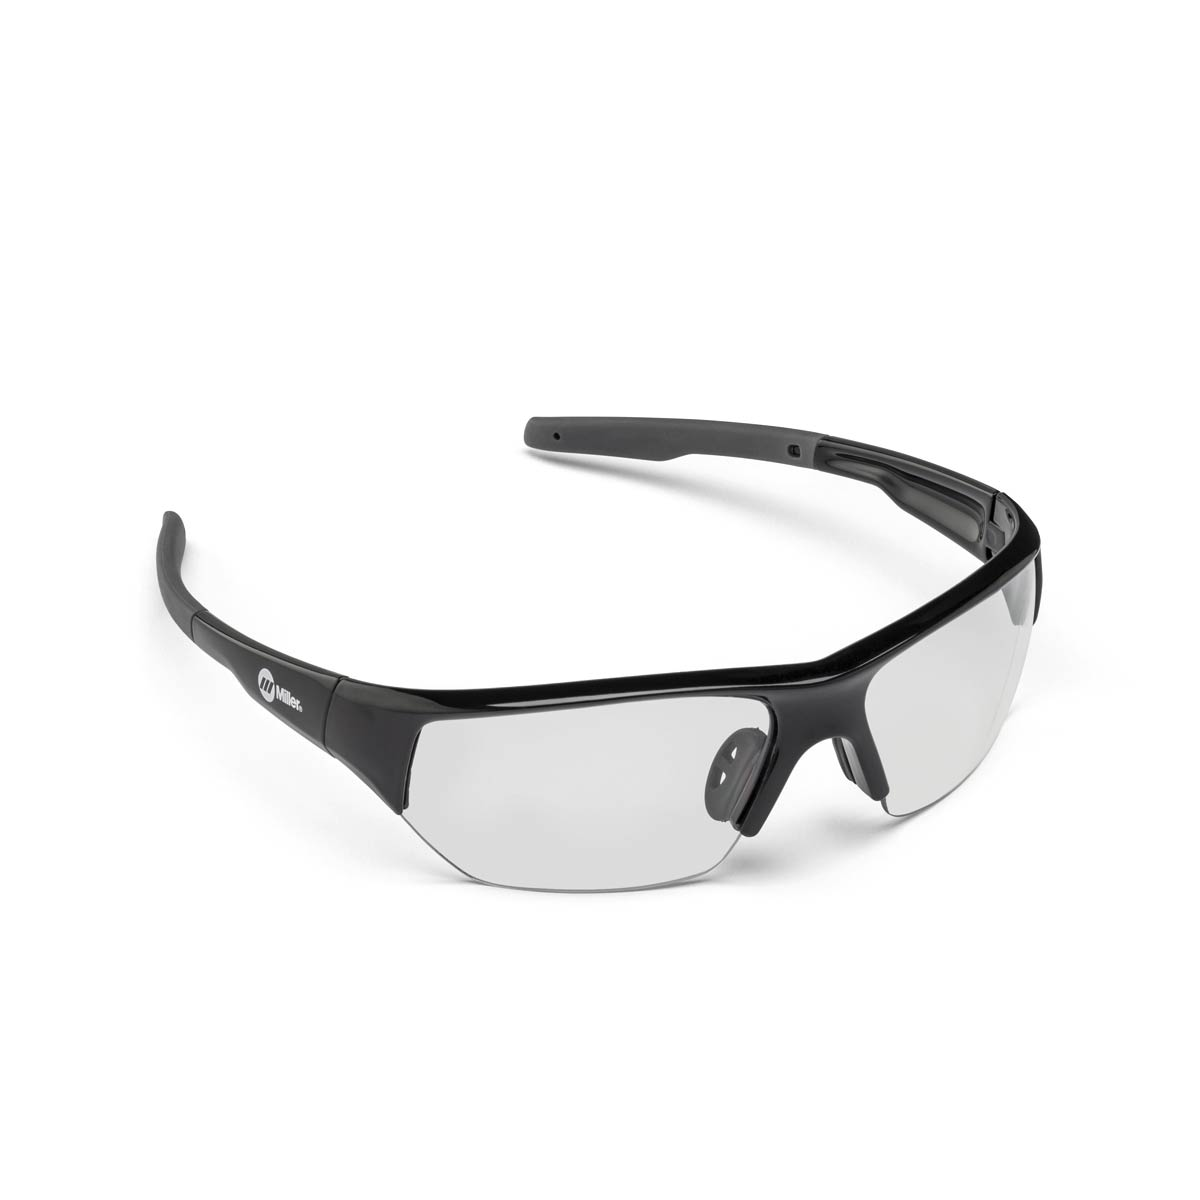 SAFETY GLASSES SPATTER BLACK CLEAR. Part: 272191. Pack: 1